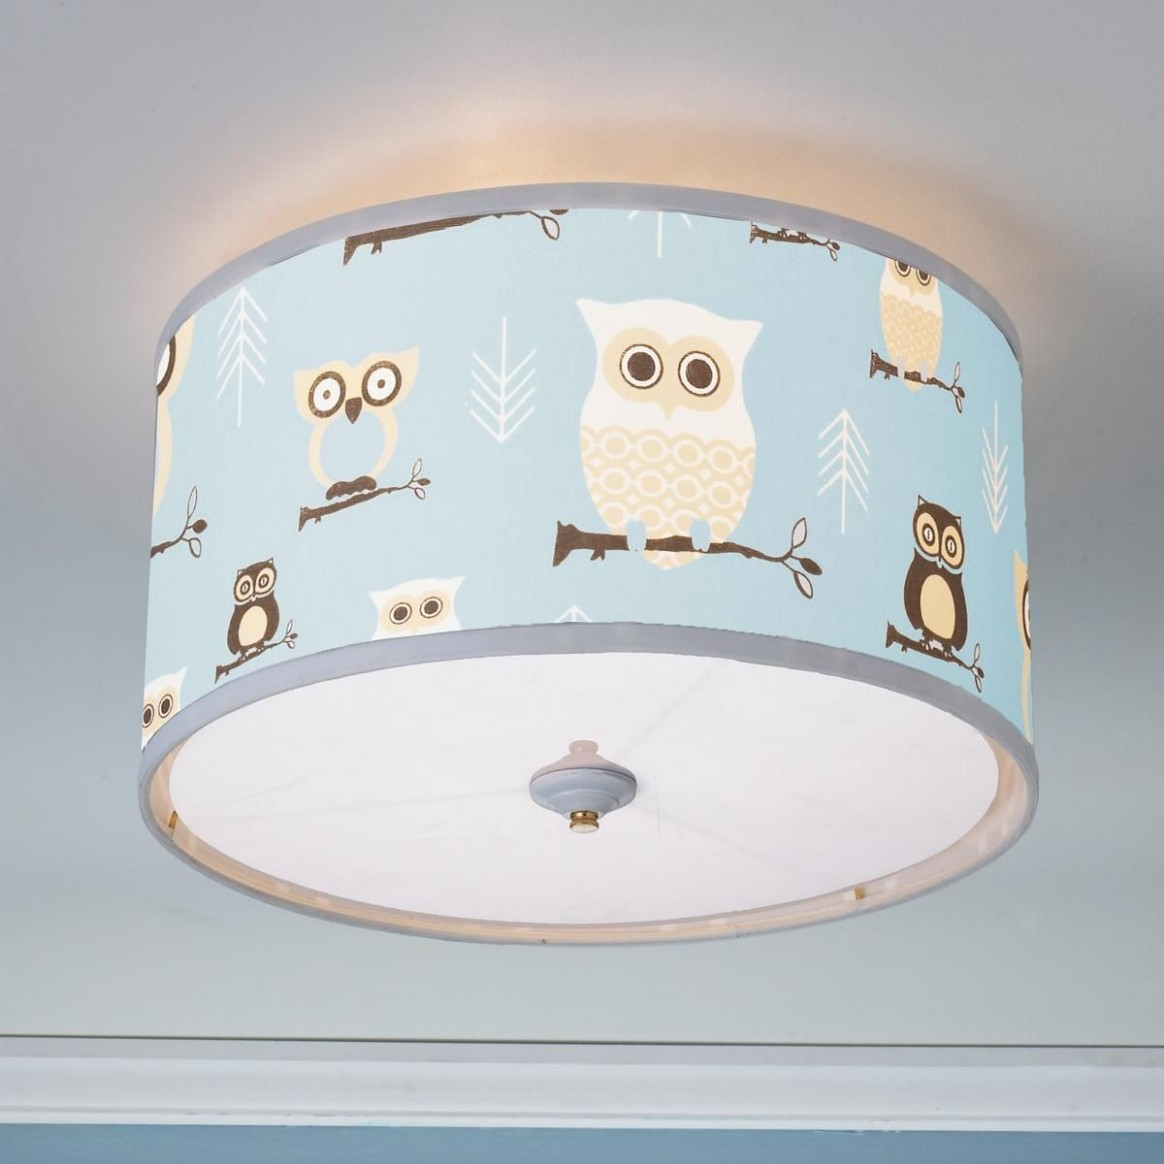 Owls Drum Shade Ceiling Light  Ceiling lights, Ceiling light  - Baby Room Light Shade